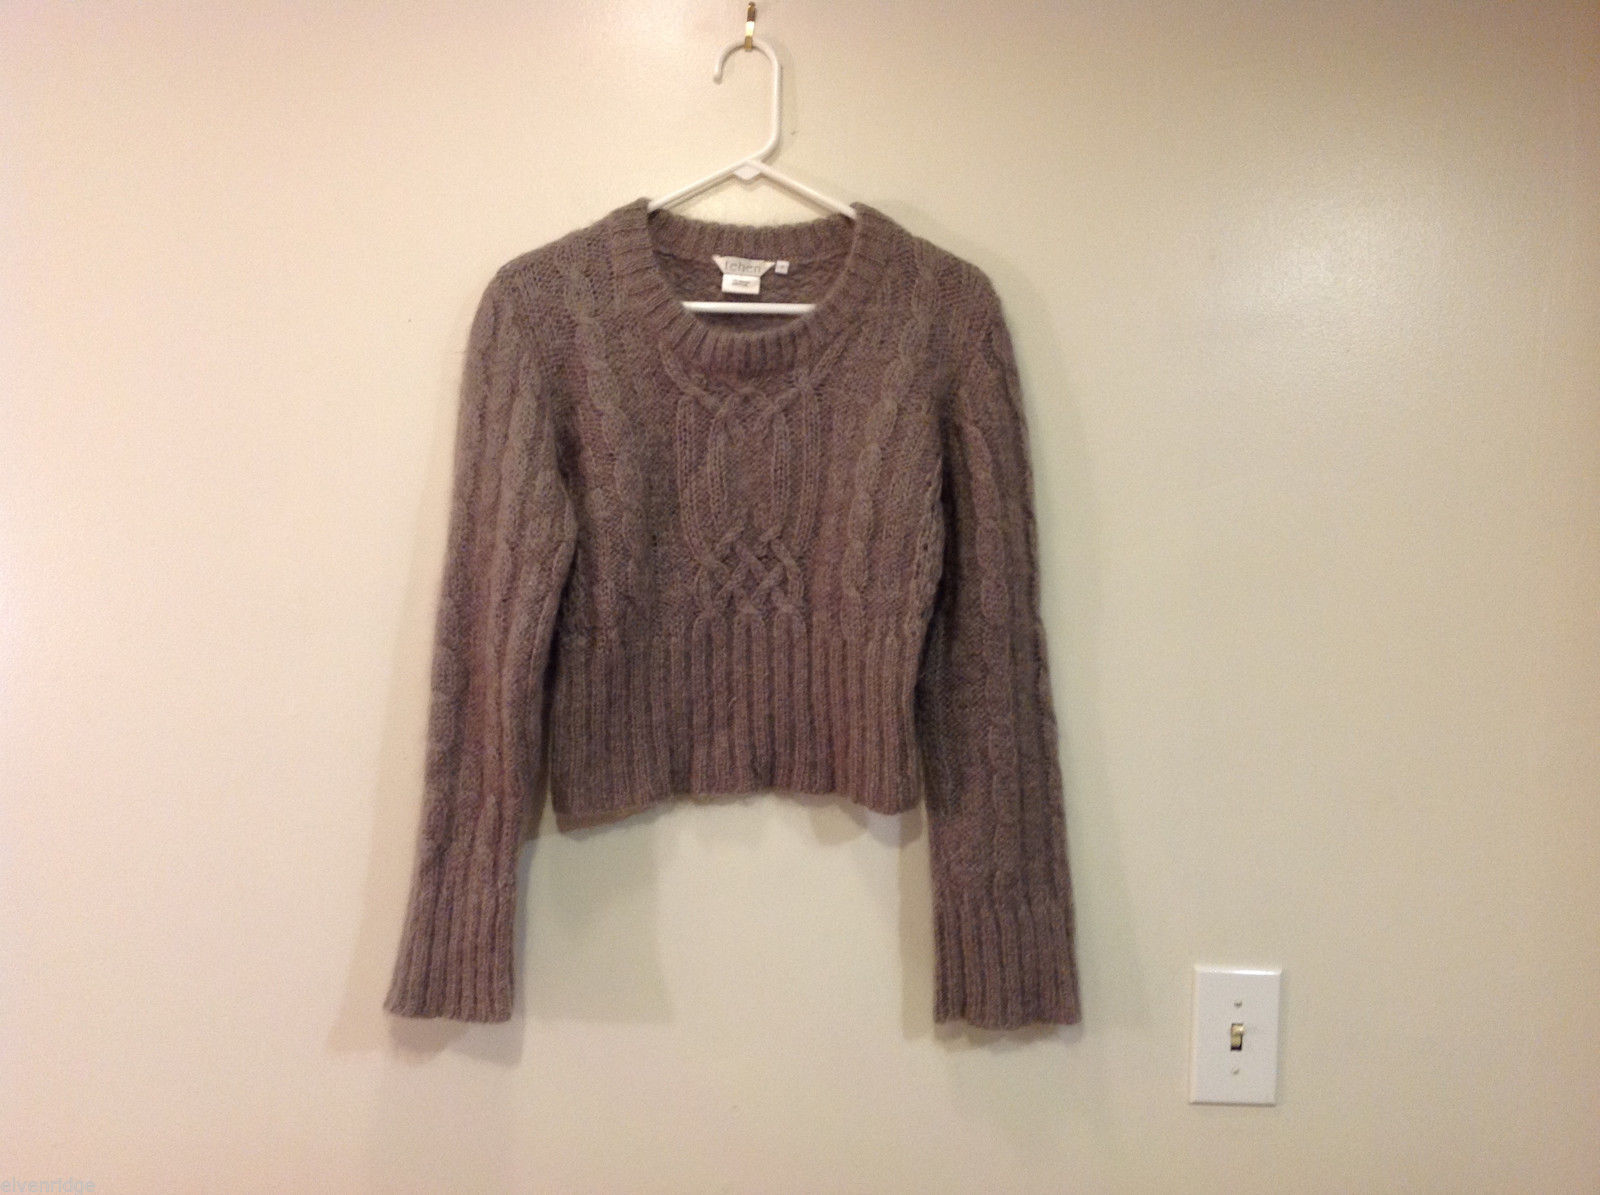 Tehen Gray Mohair Knitted Sweater, Size 2, Scoop neck